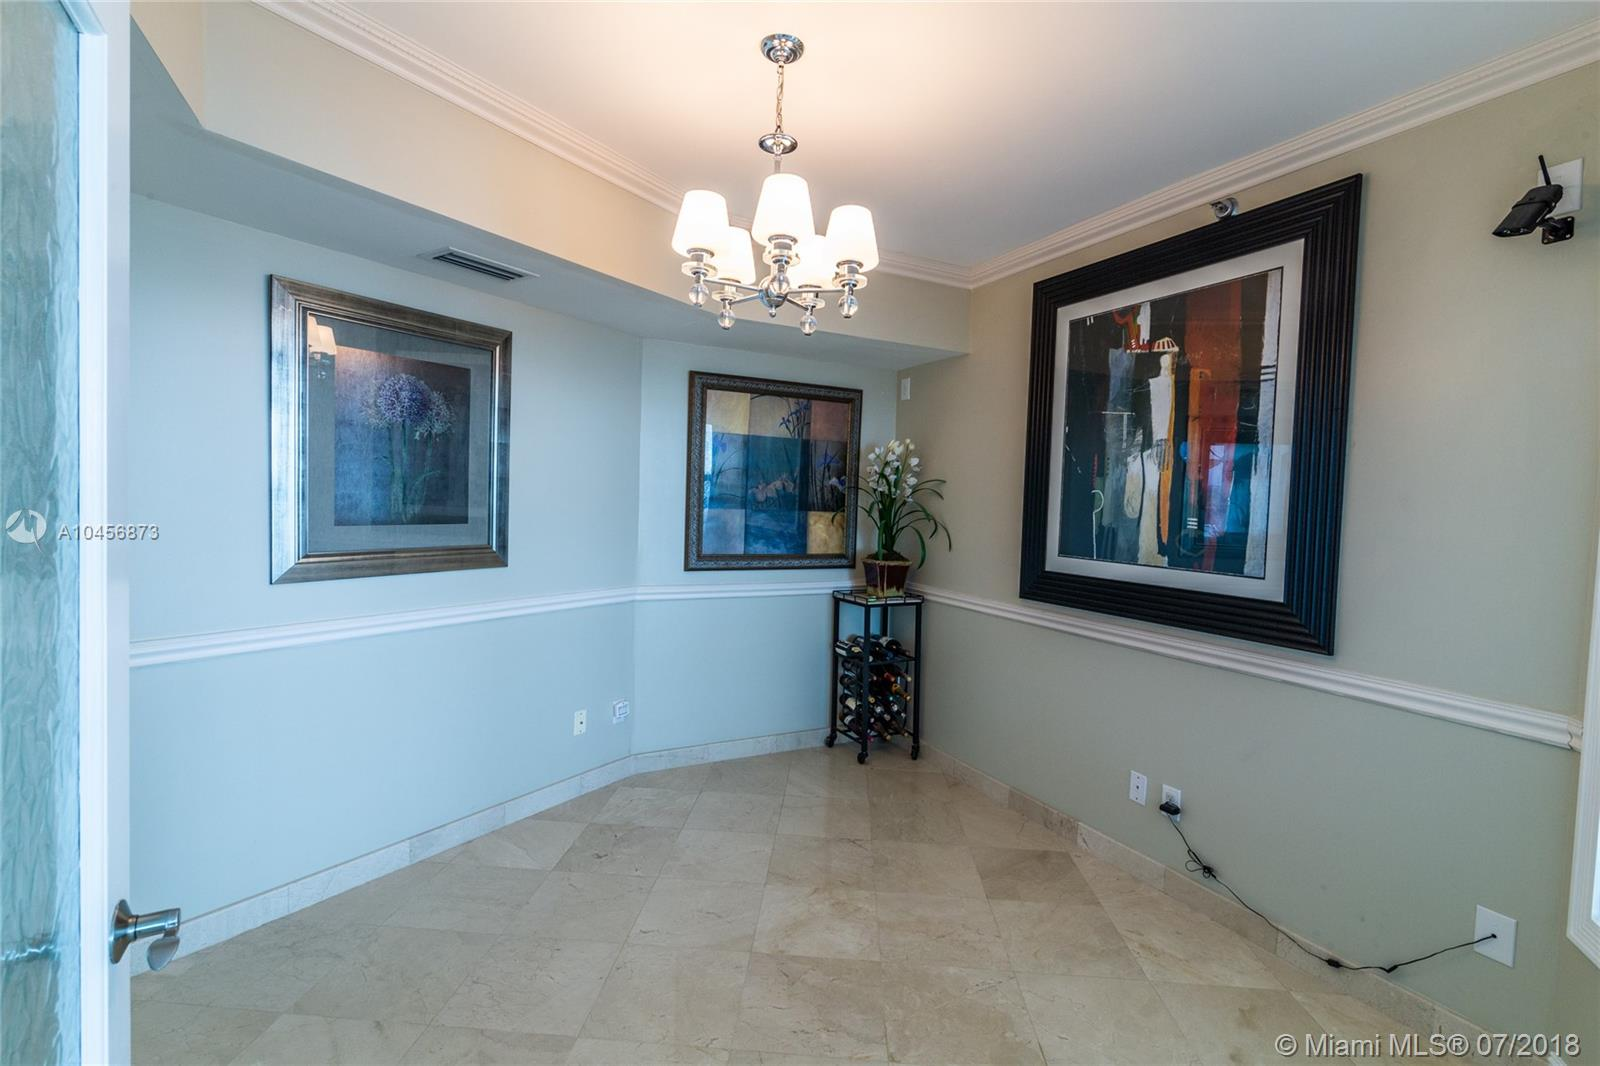 2127 Brickell Avenue, Miami, FL 33129, Bristol Tower Condominium #1702, Brickell, Miami A10456873 image #44